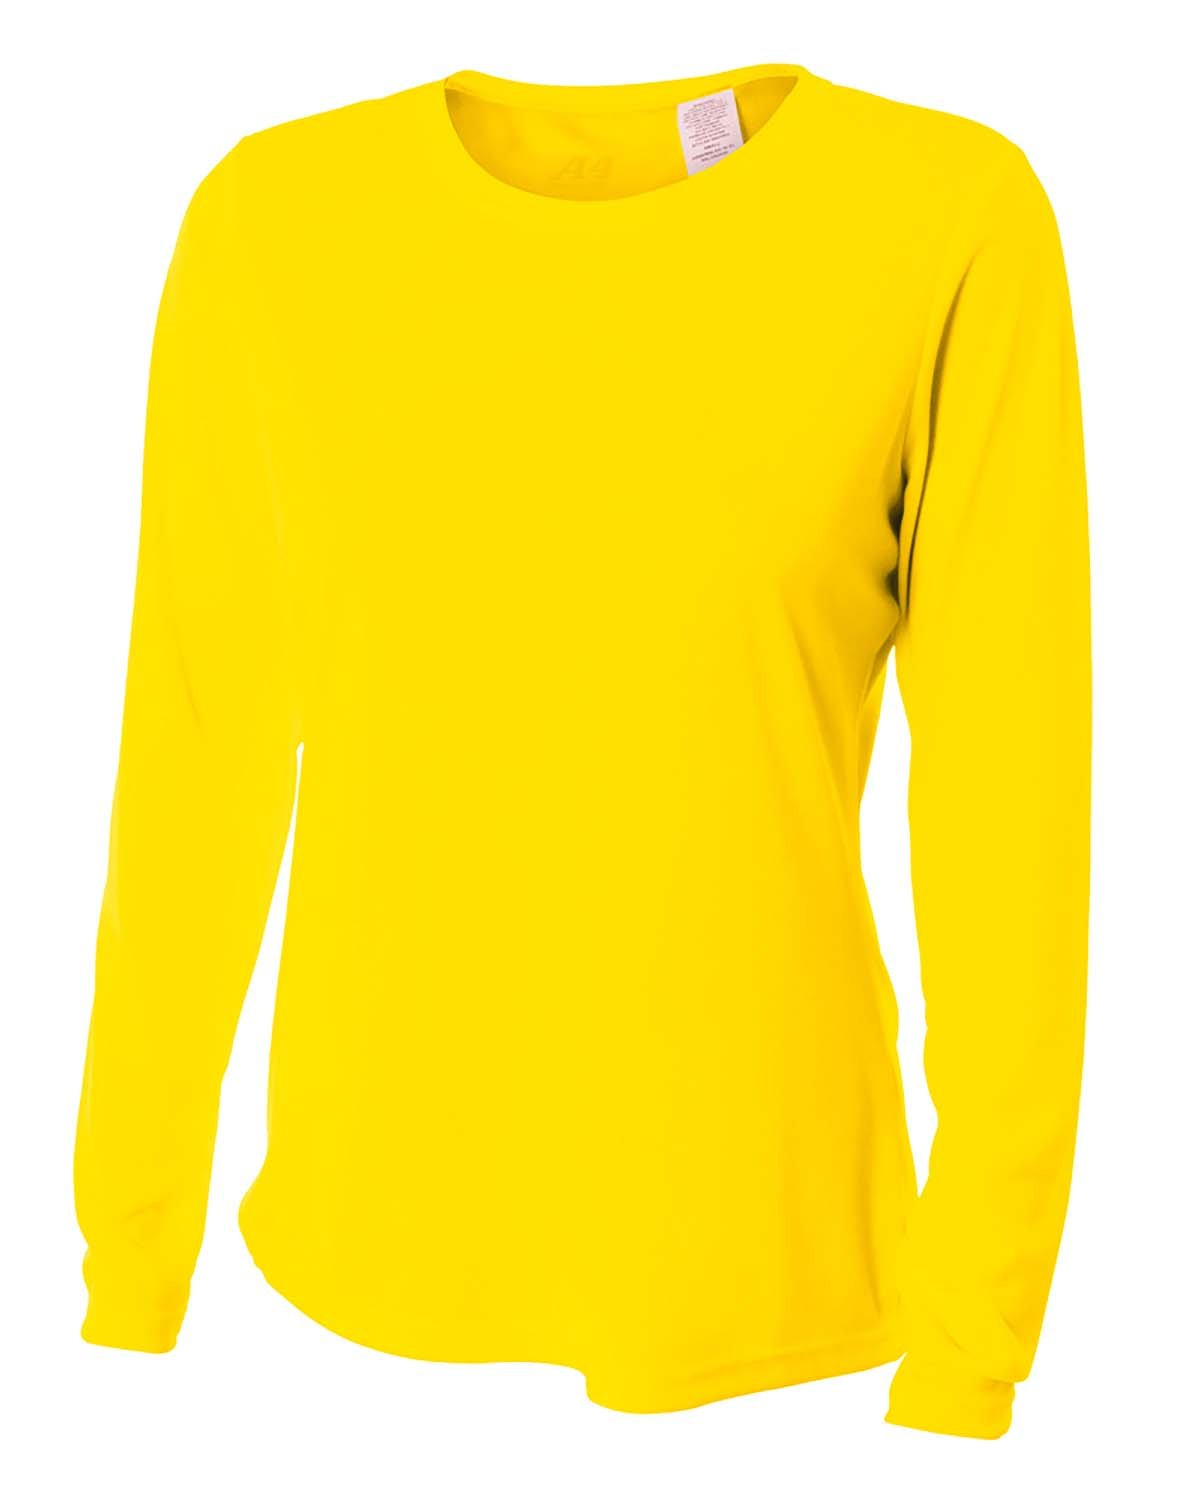 A4 Ladies' Long Sleeve Cooling Performance Crew Shirt SAFETY YELLOW